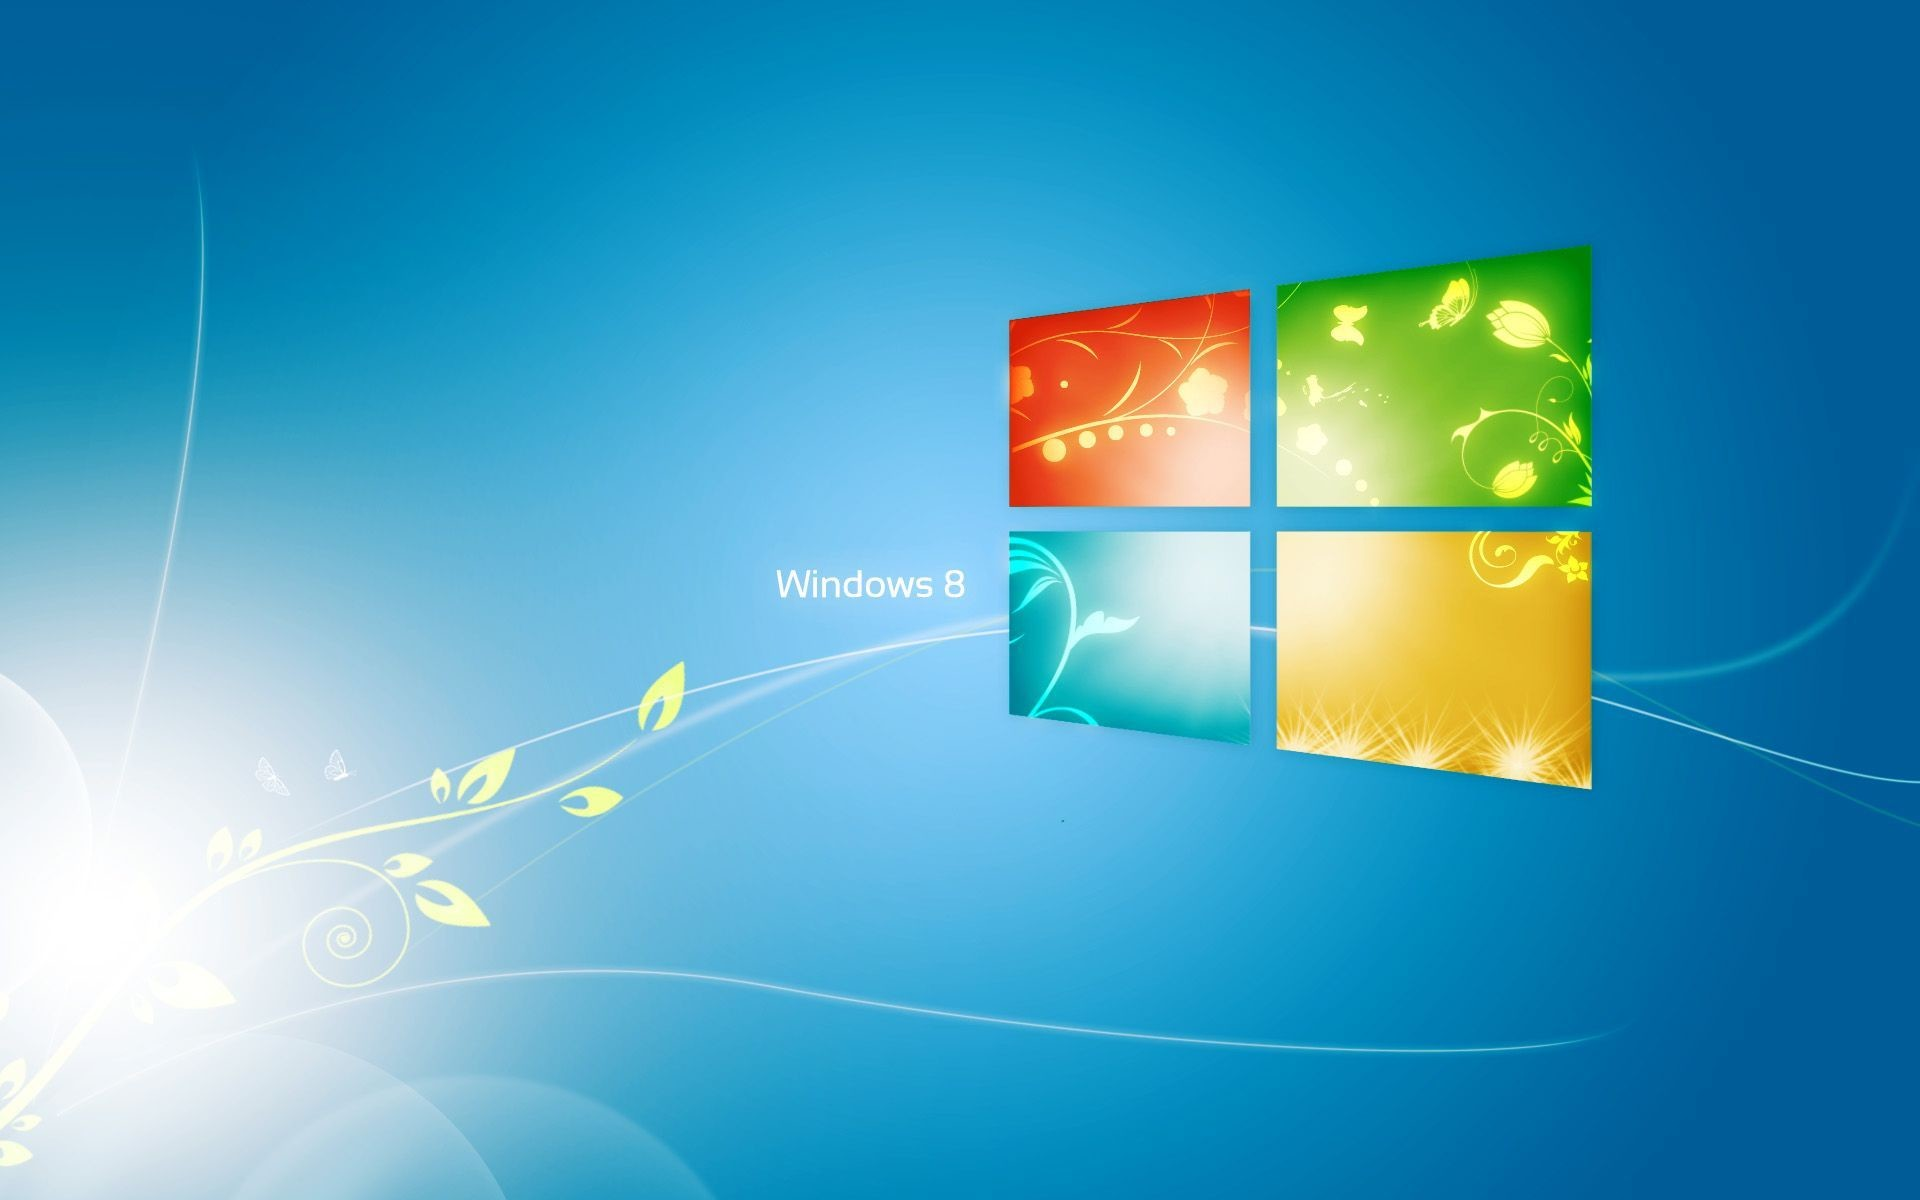 Windows D Wallpapers Wallpaper Windows 8 Wallpapers HD Wallpapers)